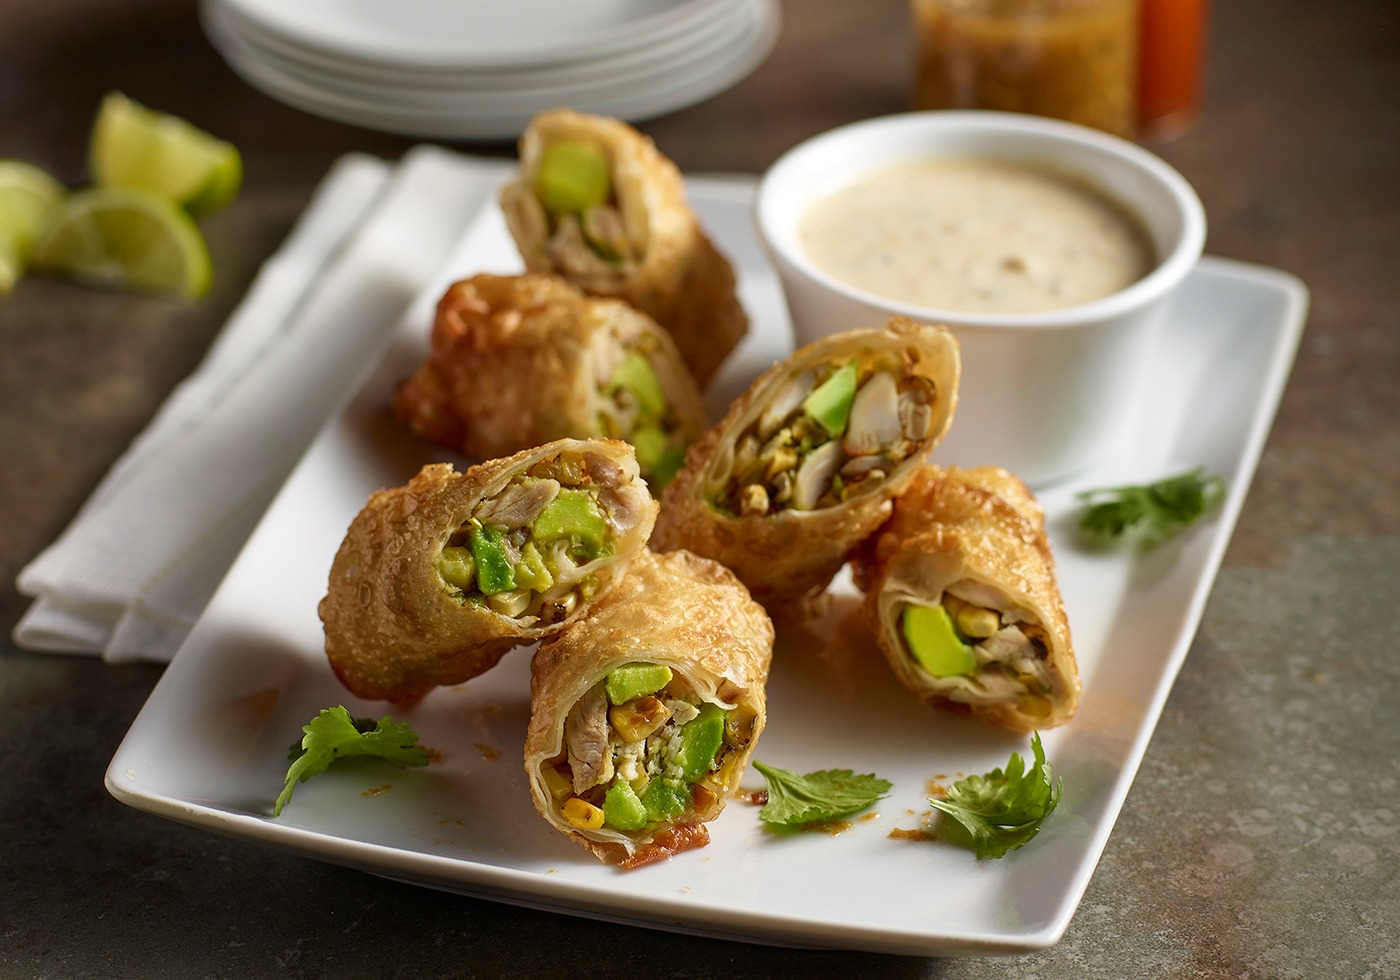 Avocado and Smoked Chicken Eggrolls on plate